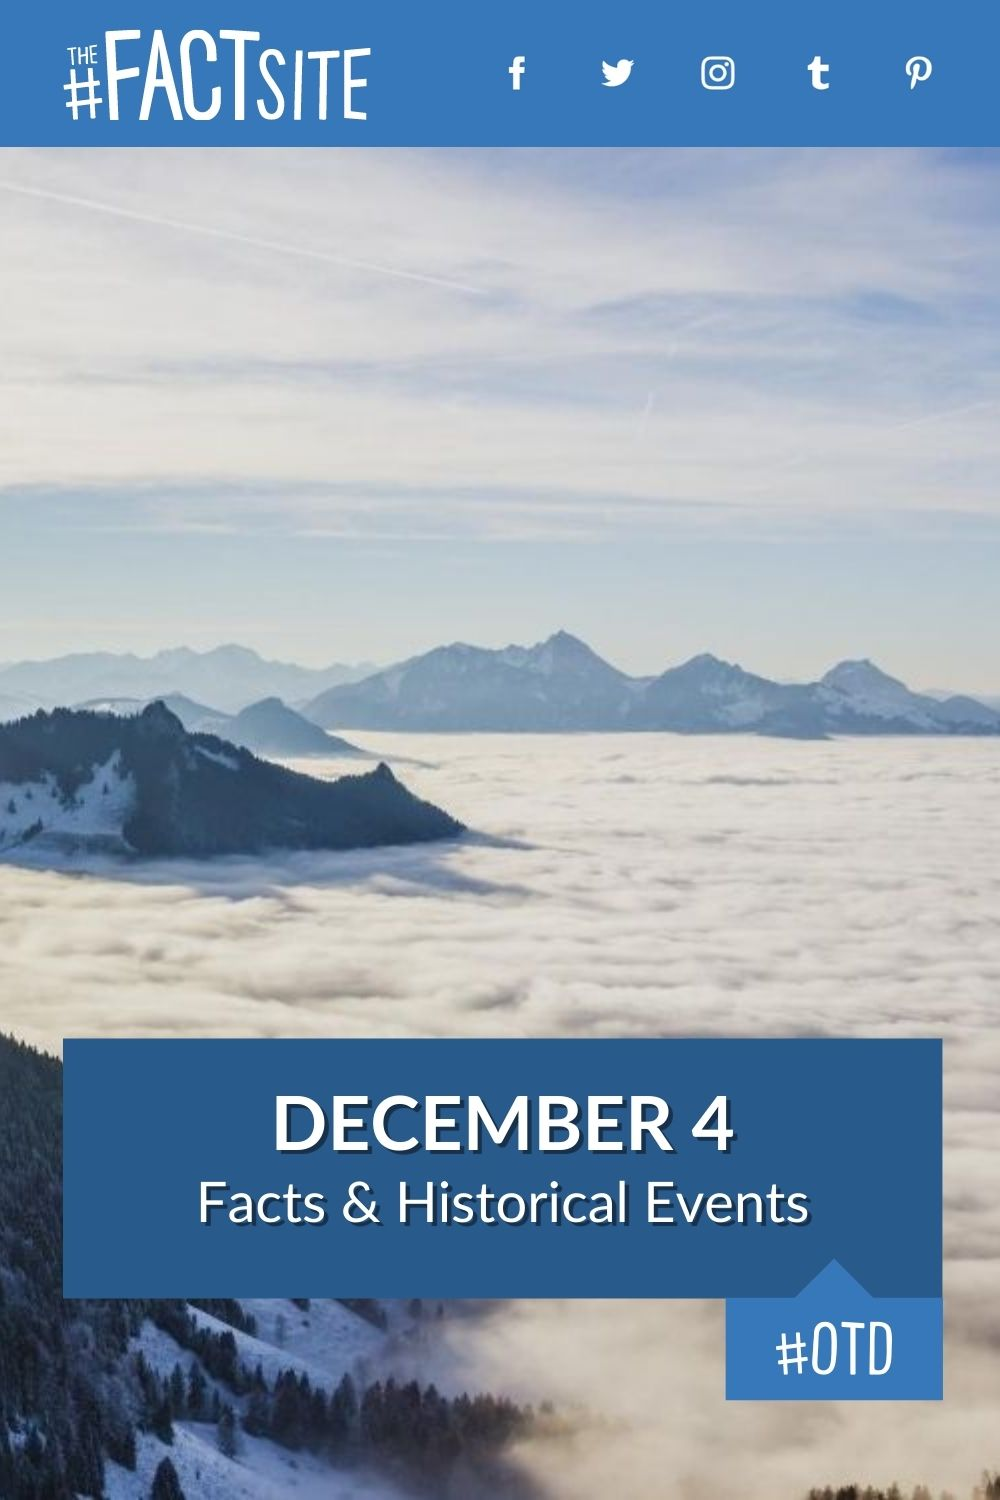 Facts & Historic Events That Happened on December 4